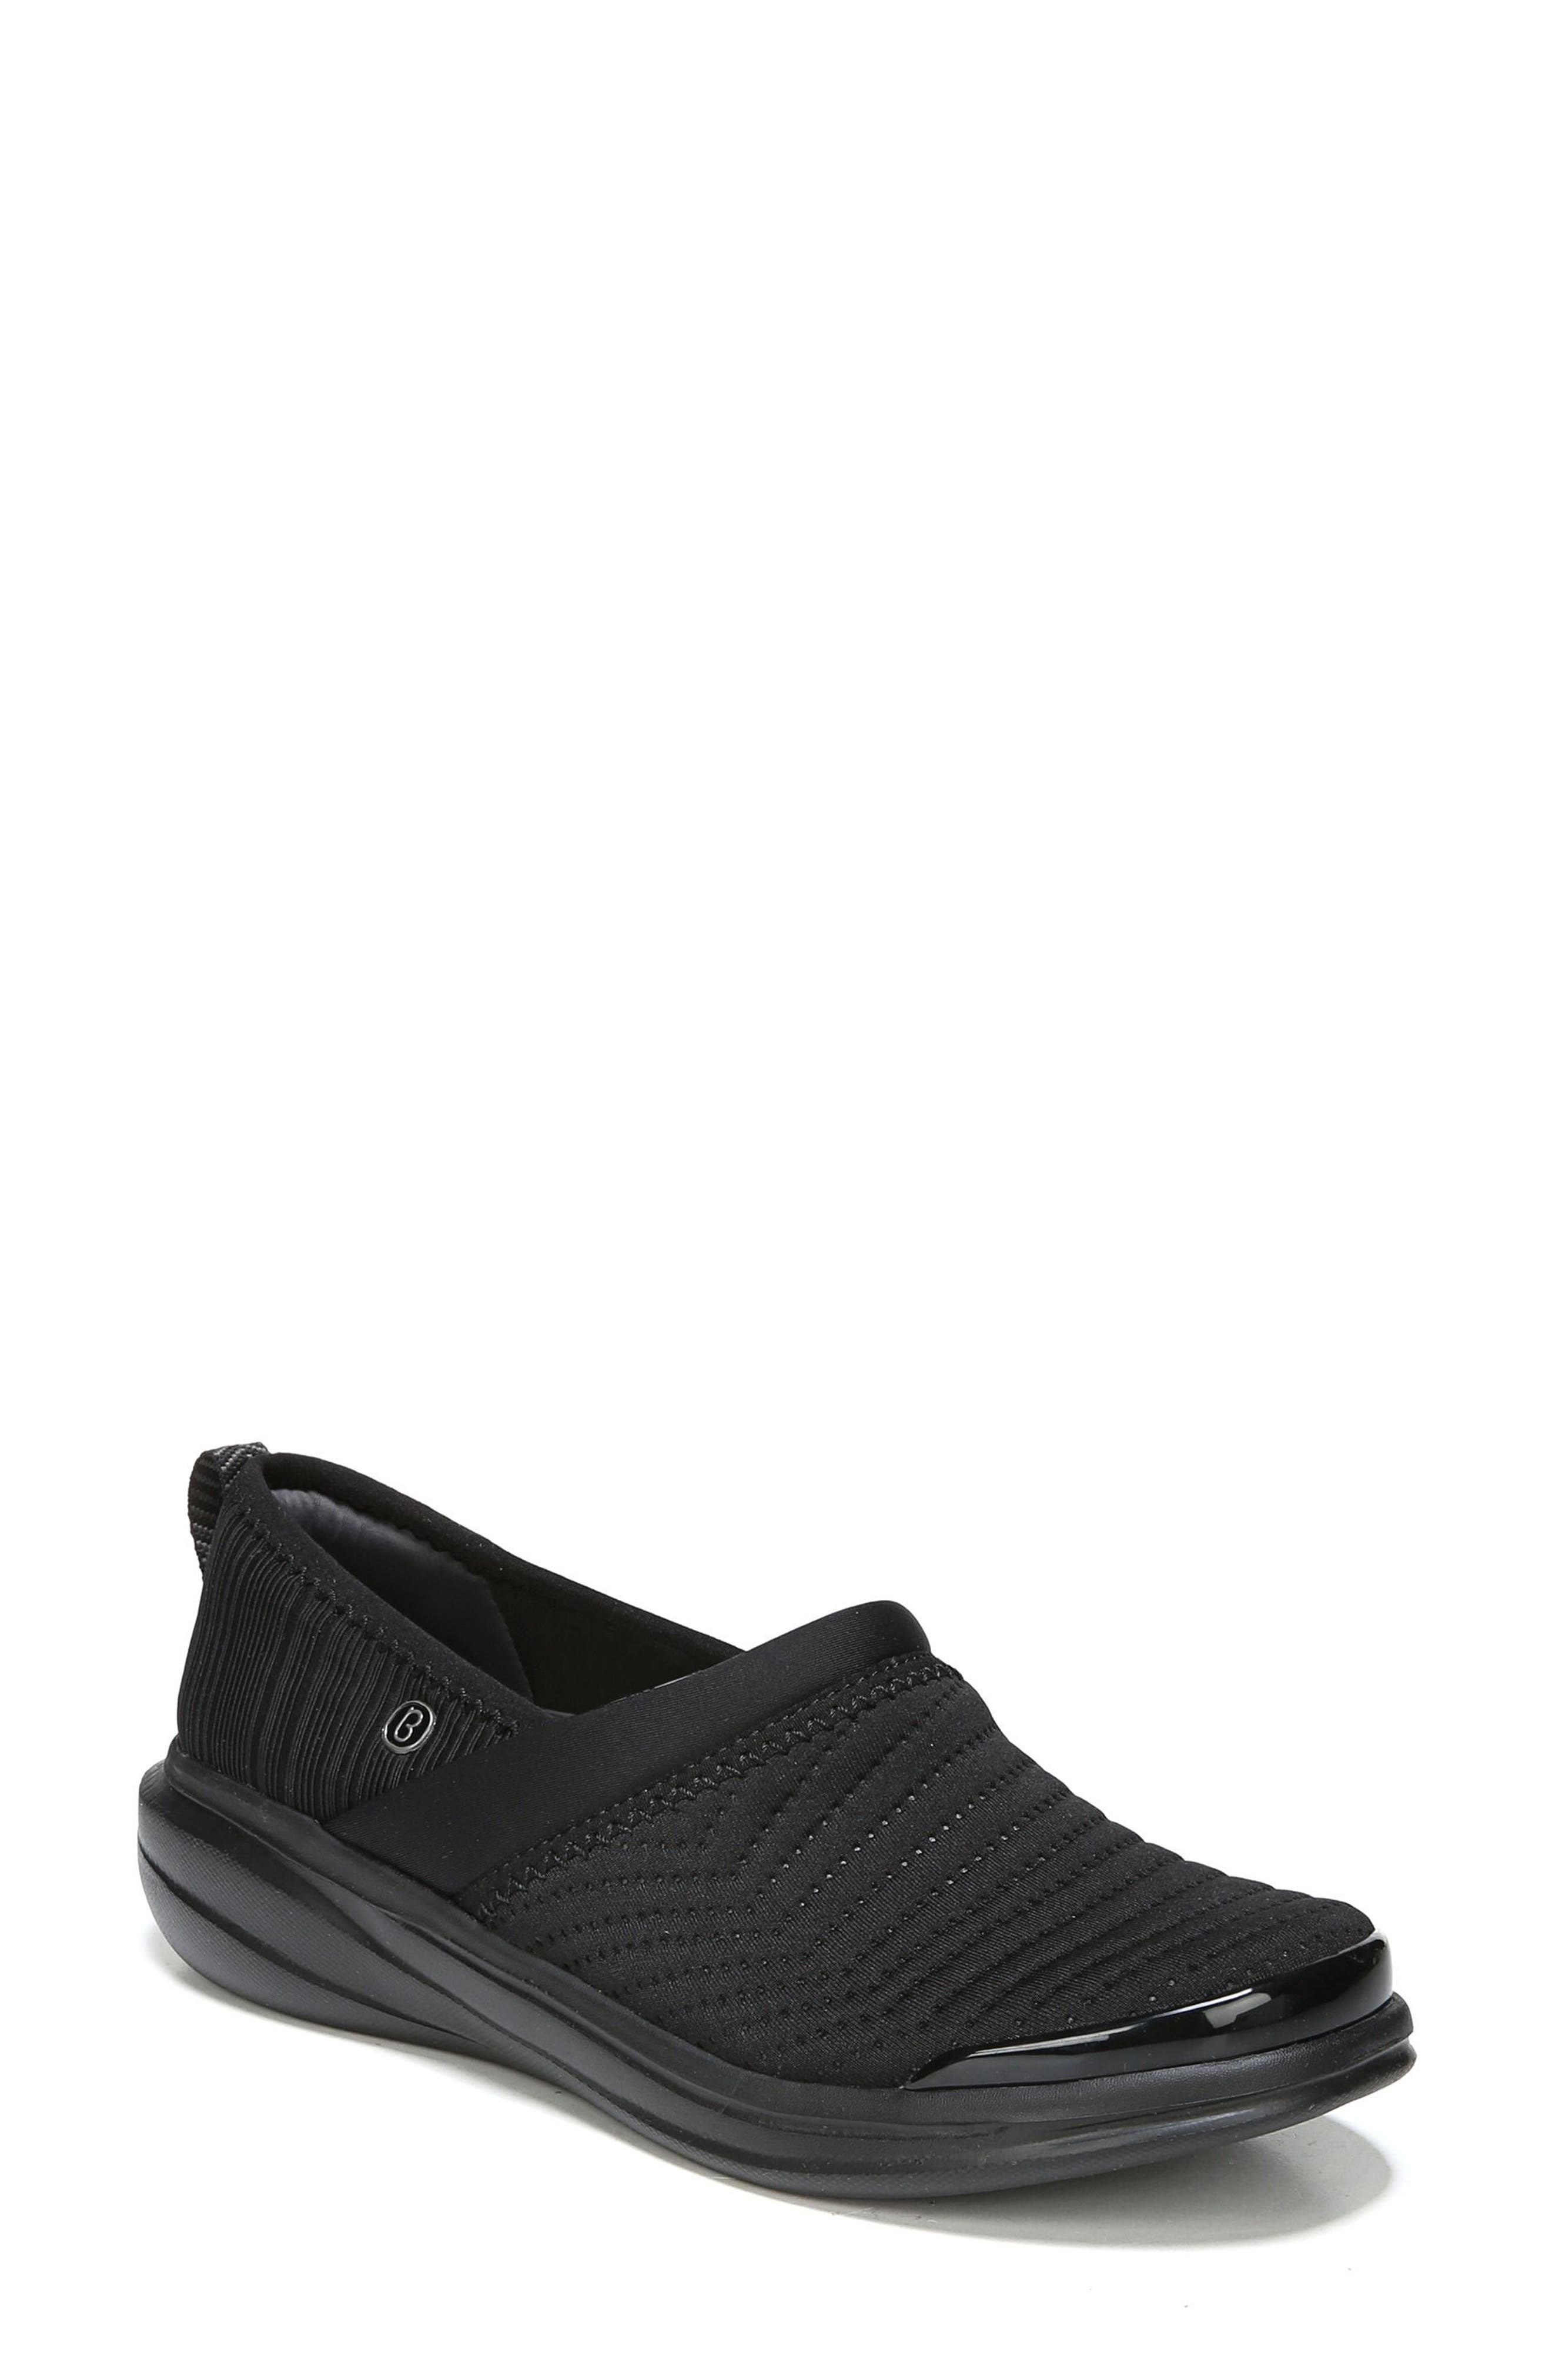 Coco Slip-On Sneaker,                             Main thumbnail 1, color,                             Black Fabric